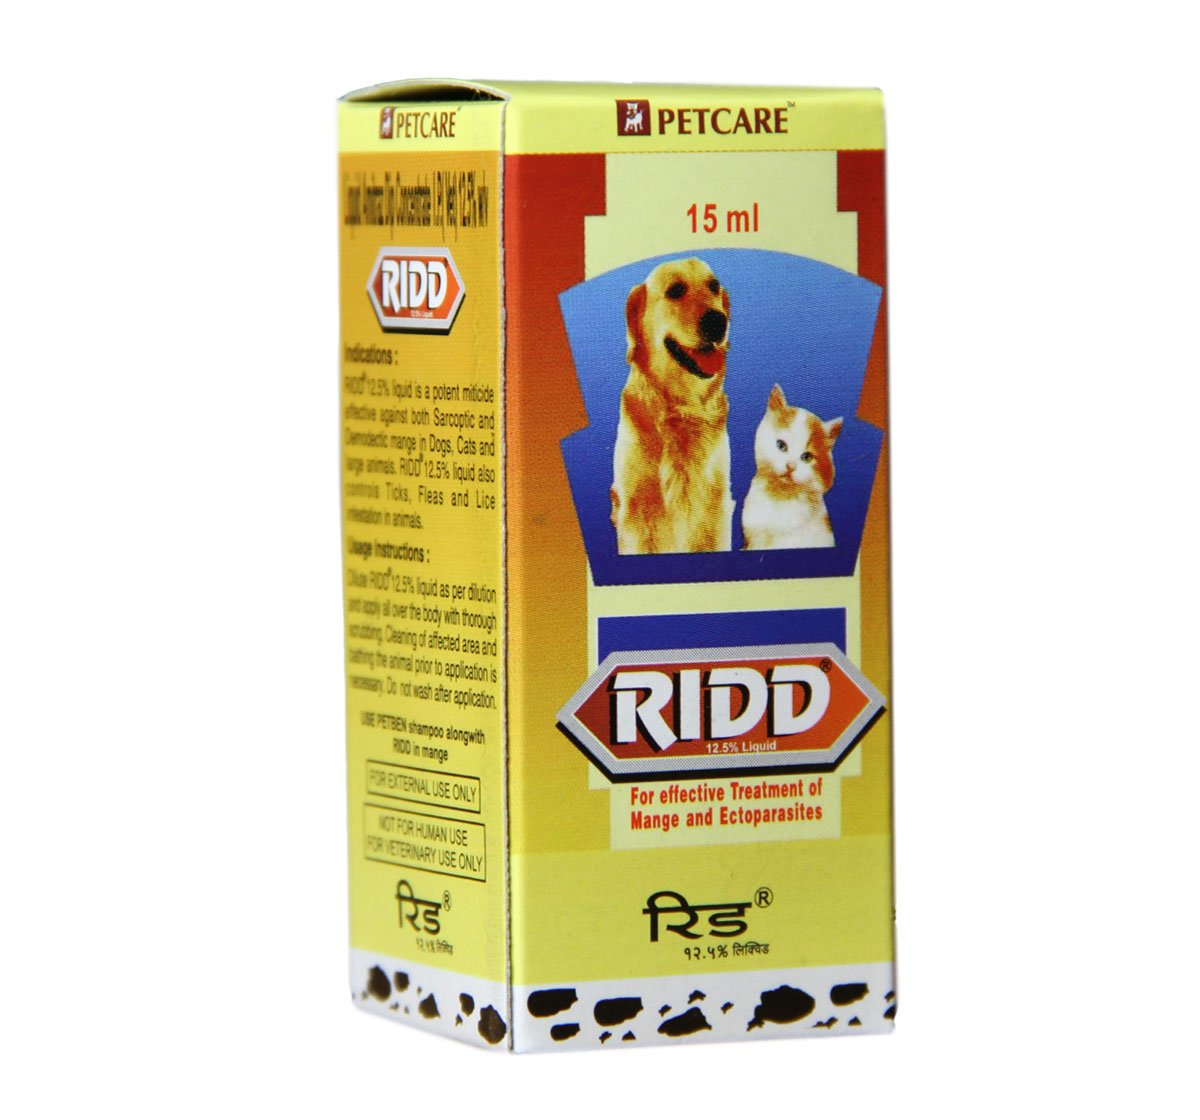 PetCare Ridd 15ml